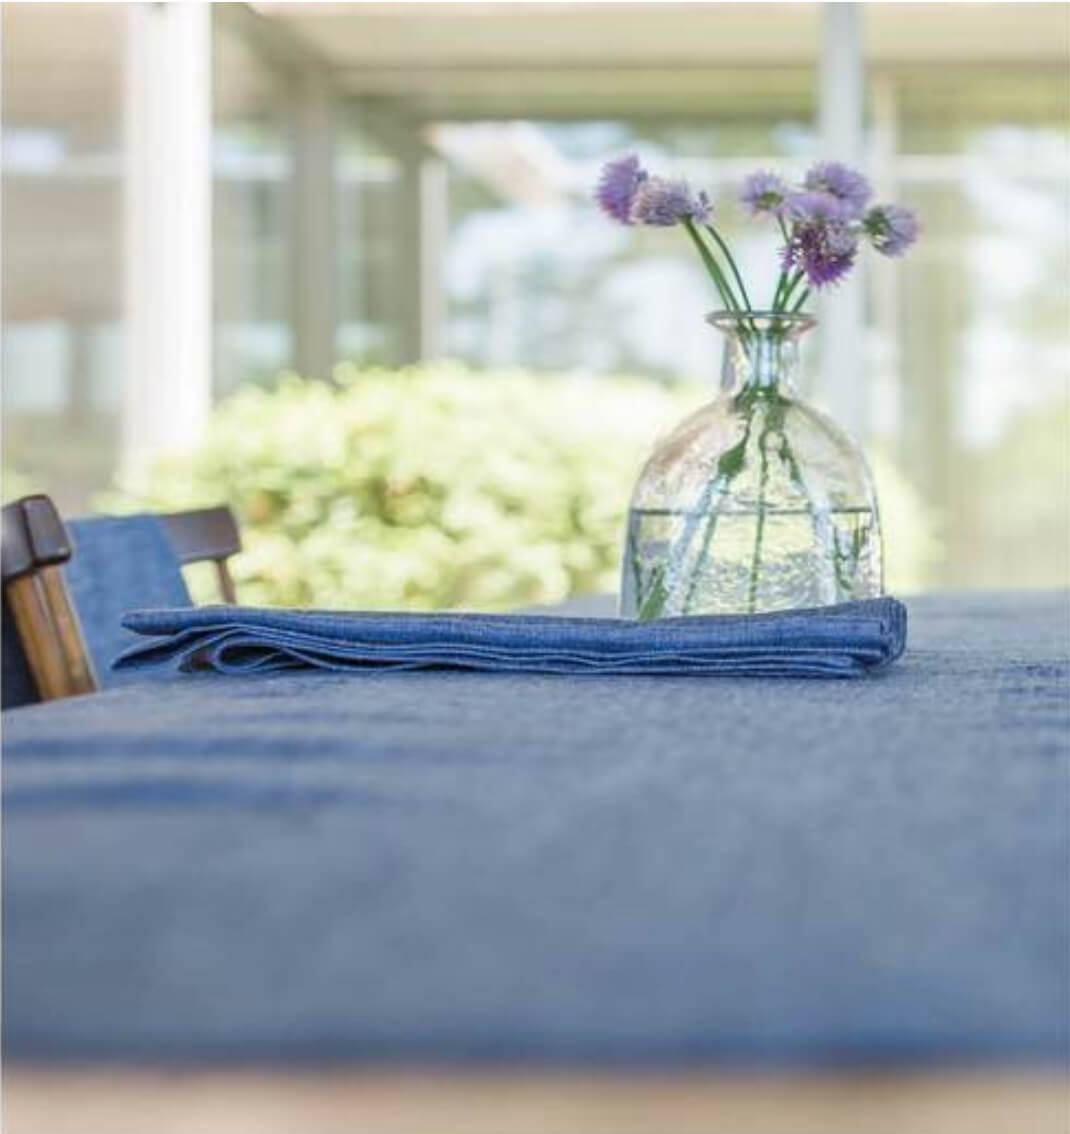 Blue linen tablecloth with flowers